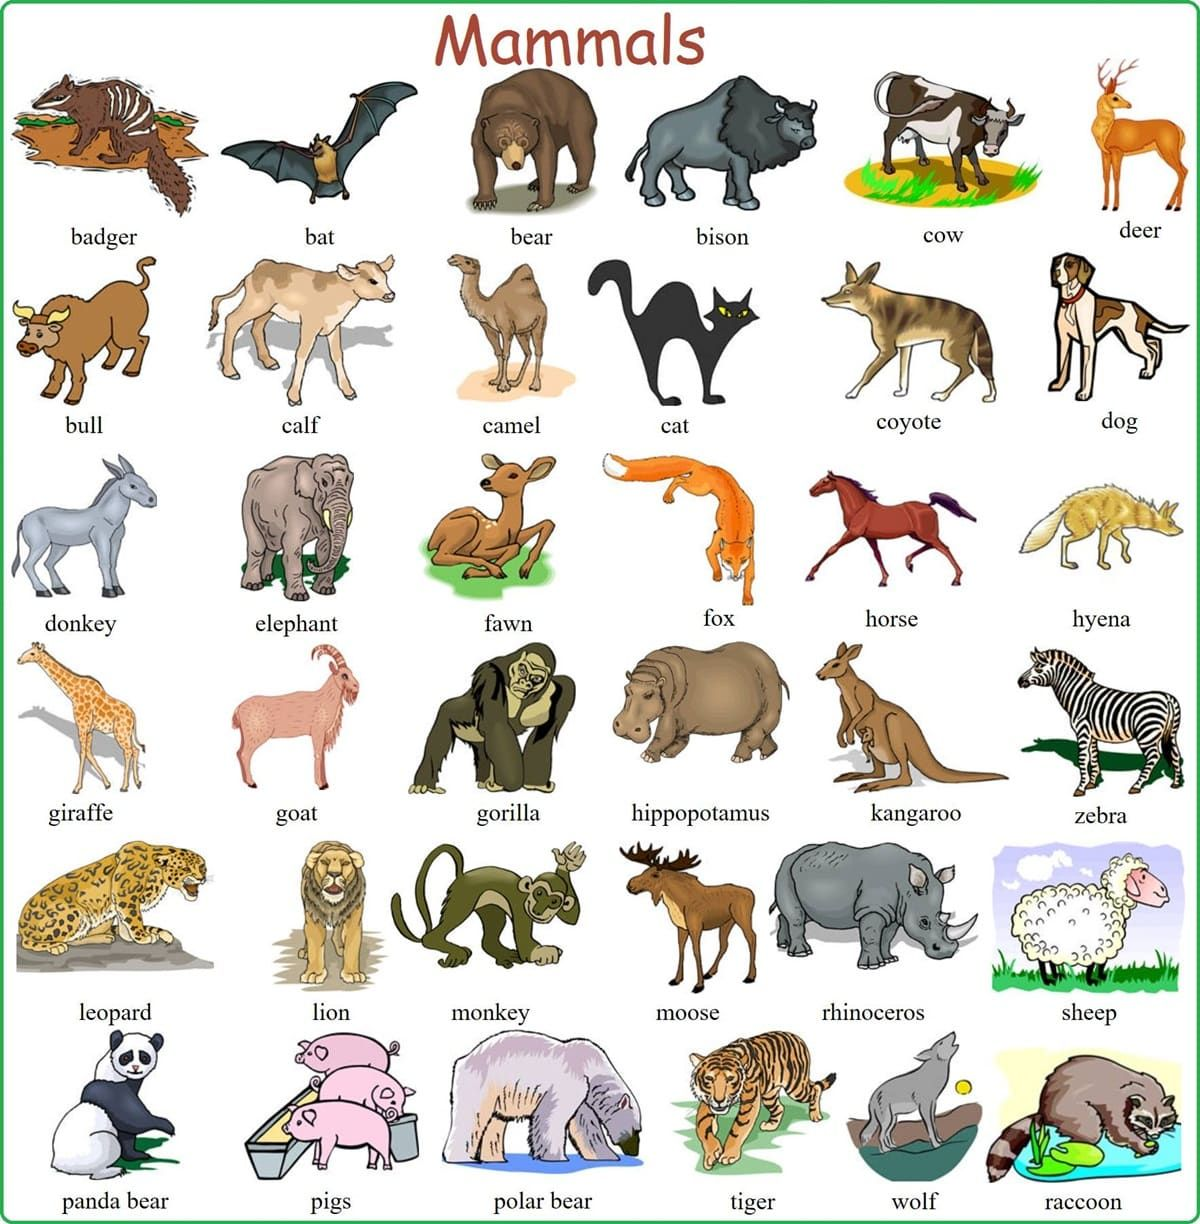 Learn English Vocabulary Through Pictures 100 Animal Names English Vocabulary Learn English Vocabulary Animals Name In English